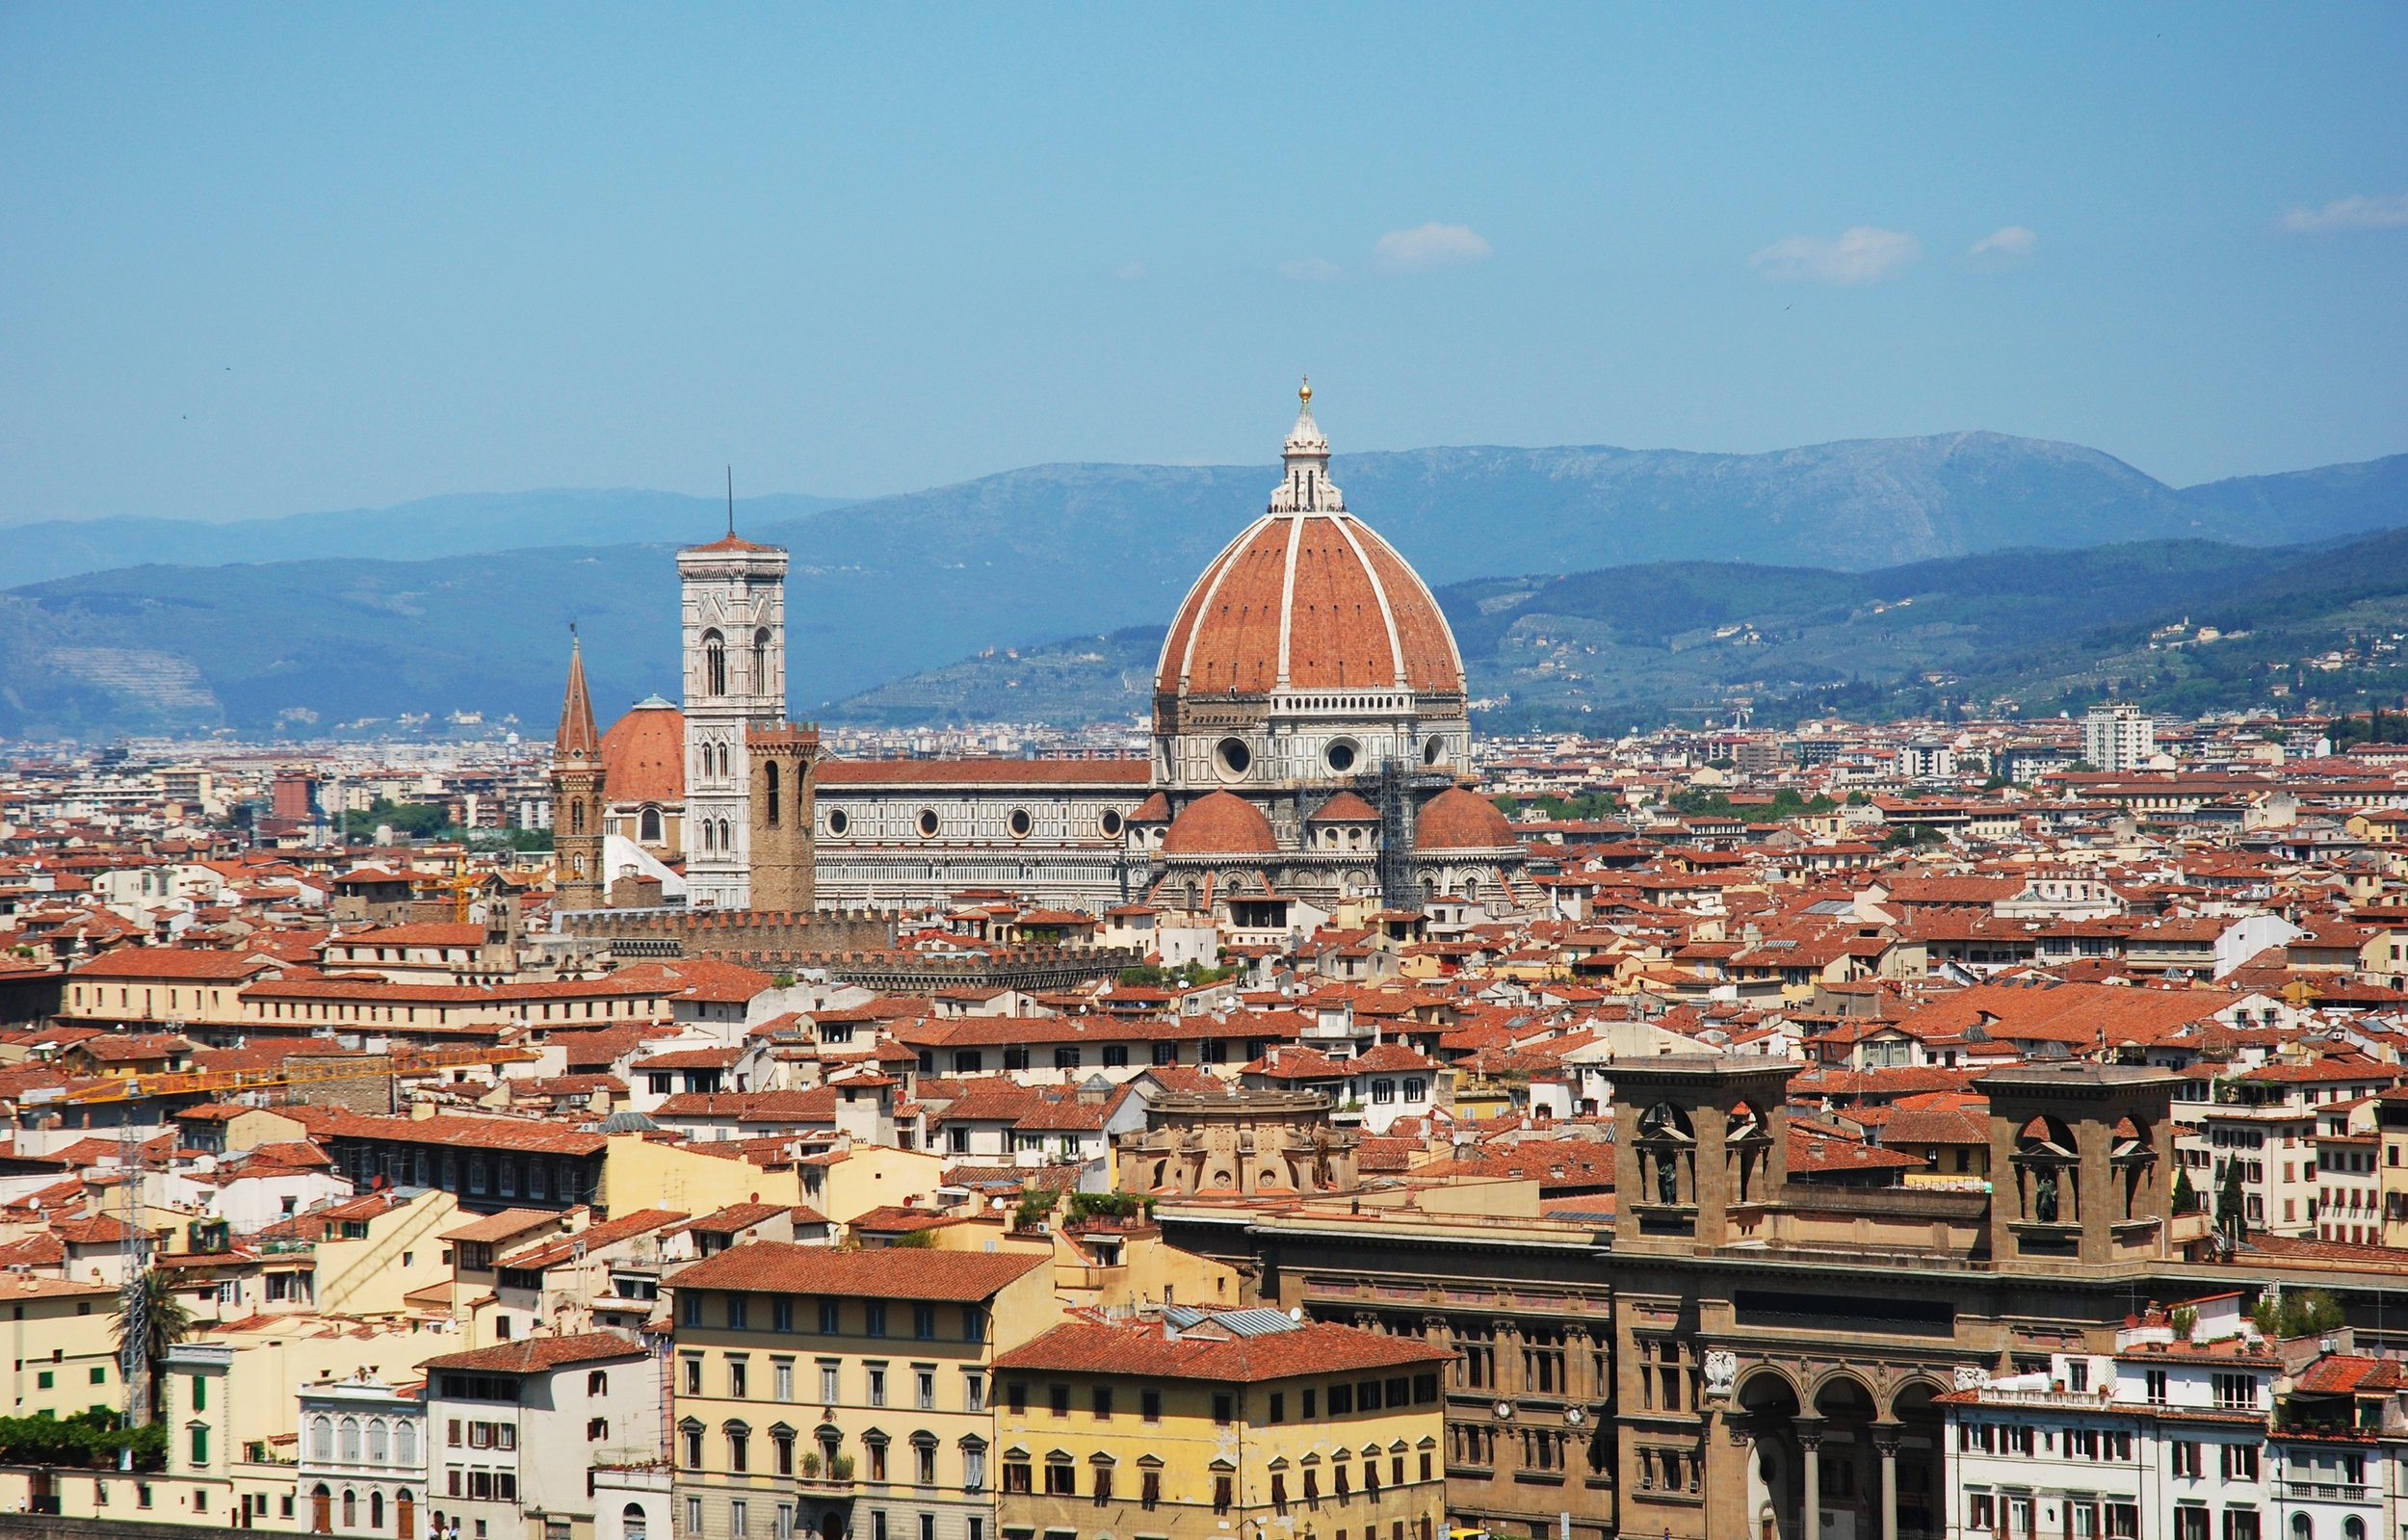 The beautiful city of Florence on a backpacking trip